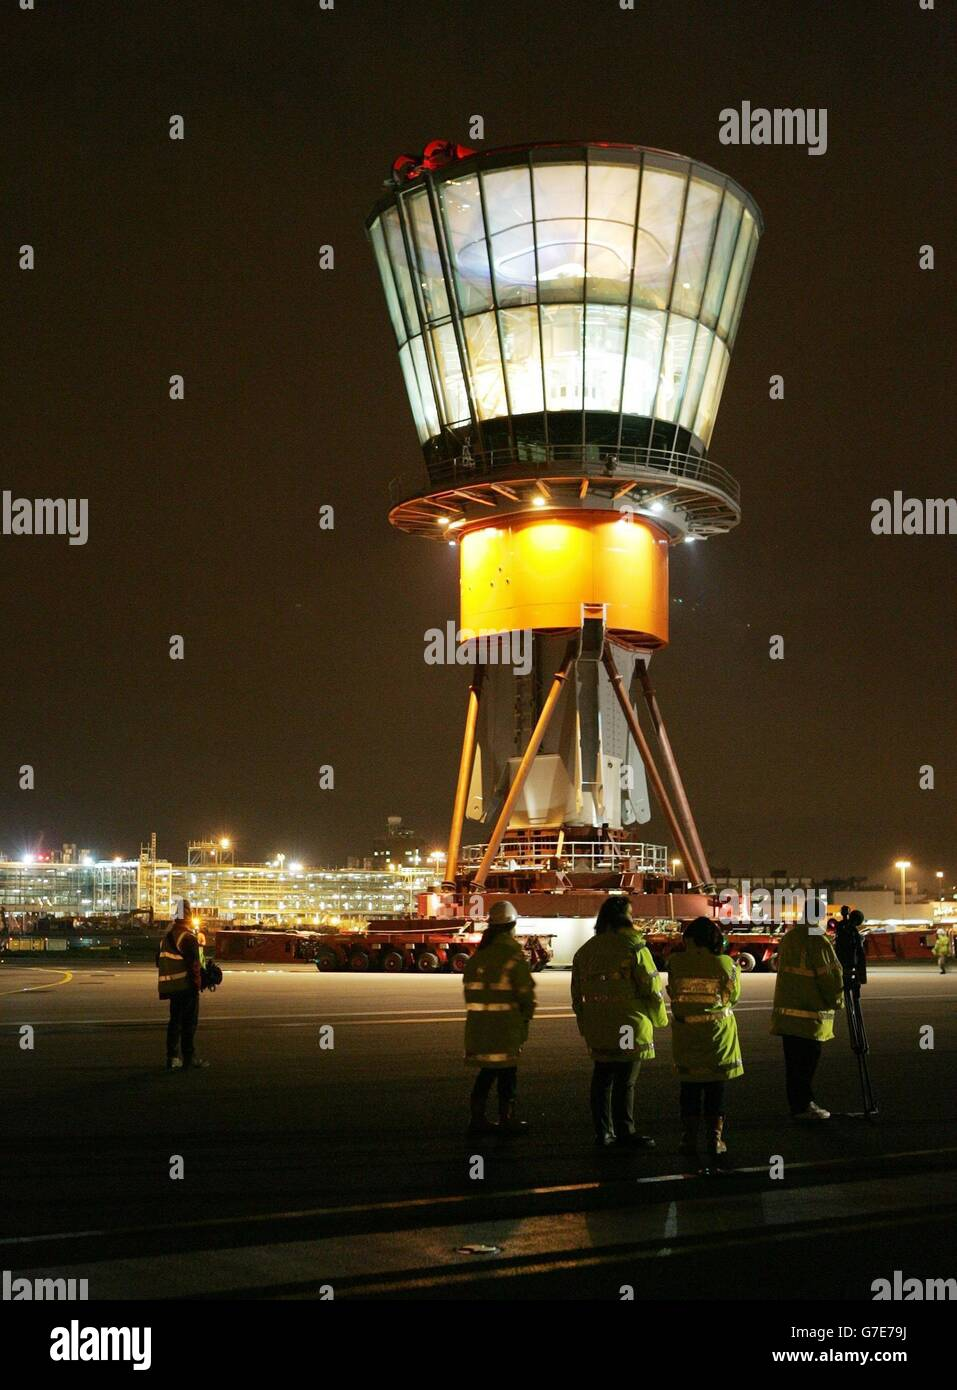 New Control Tower at Heathrow Airport - Stock Image